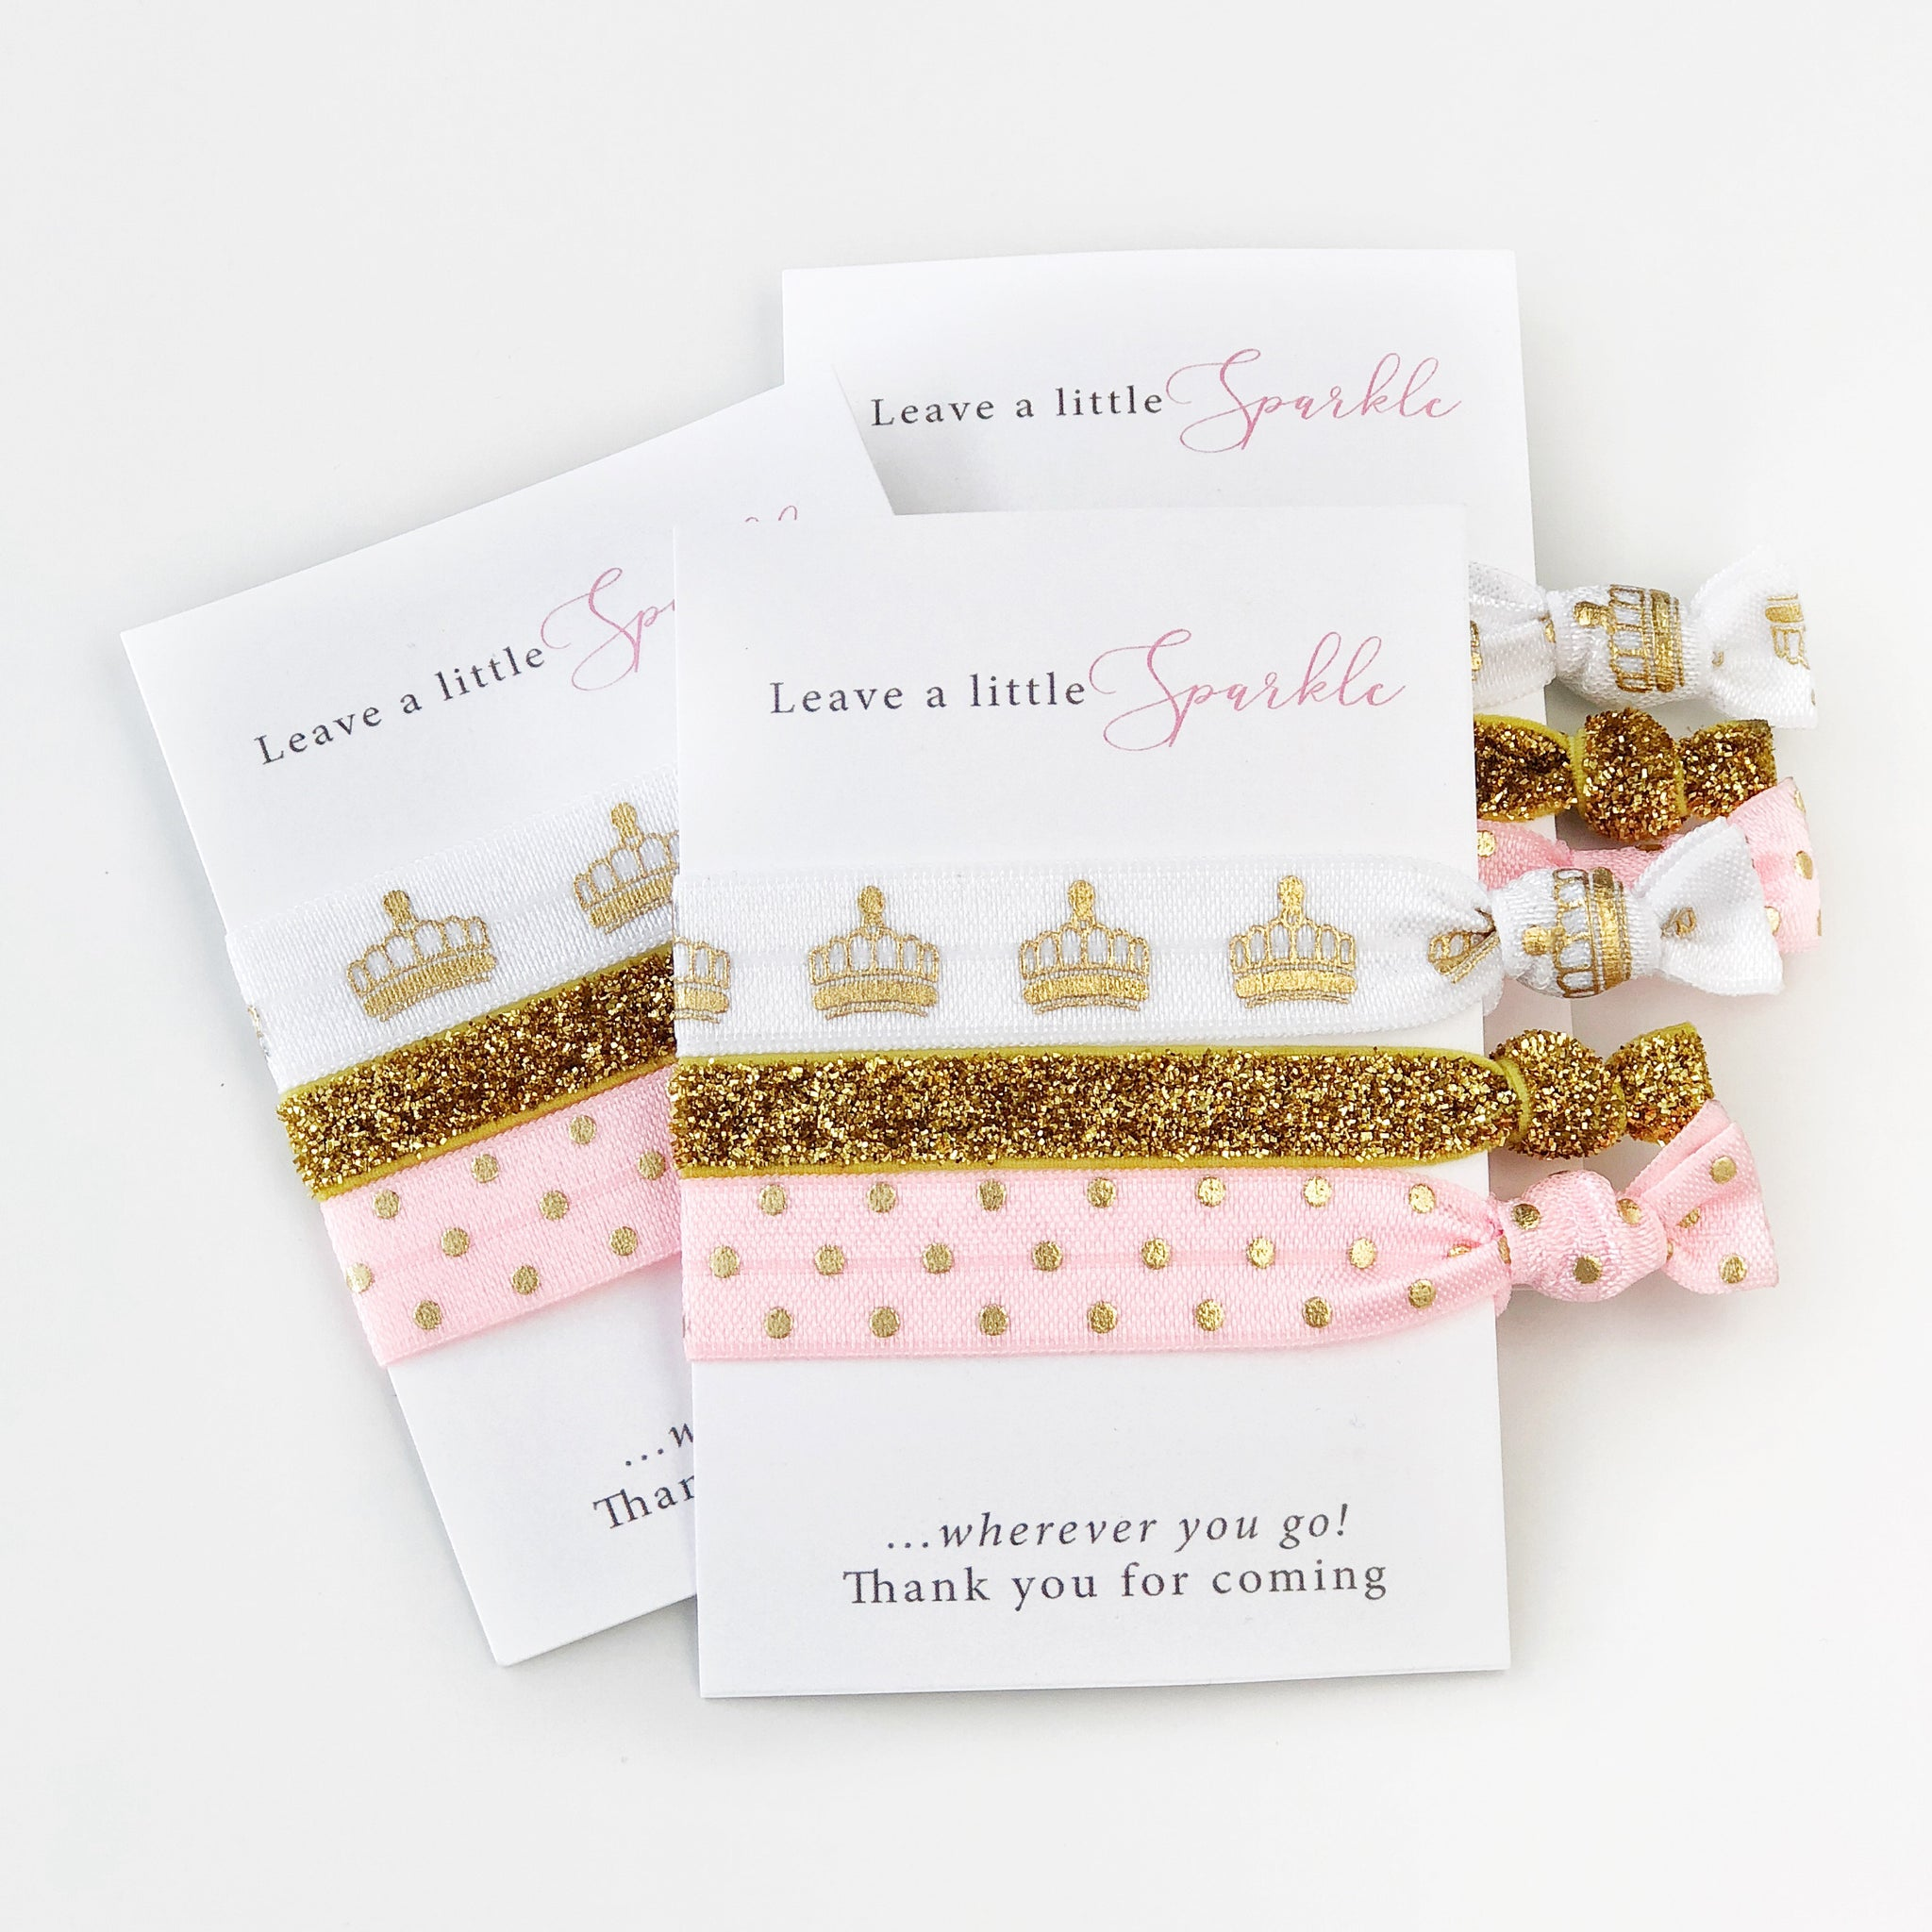 Princess Party Favors - Princess Birthday Party - Princess Baby Shower - @PlumPolkaDot